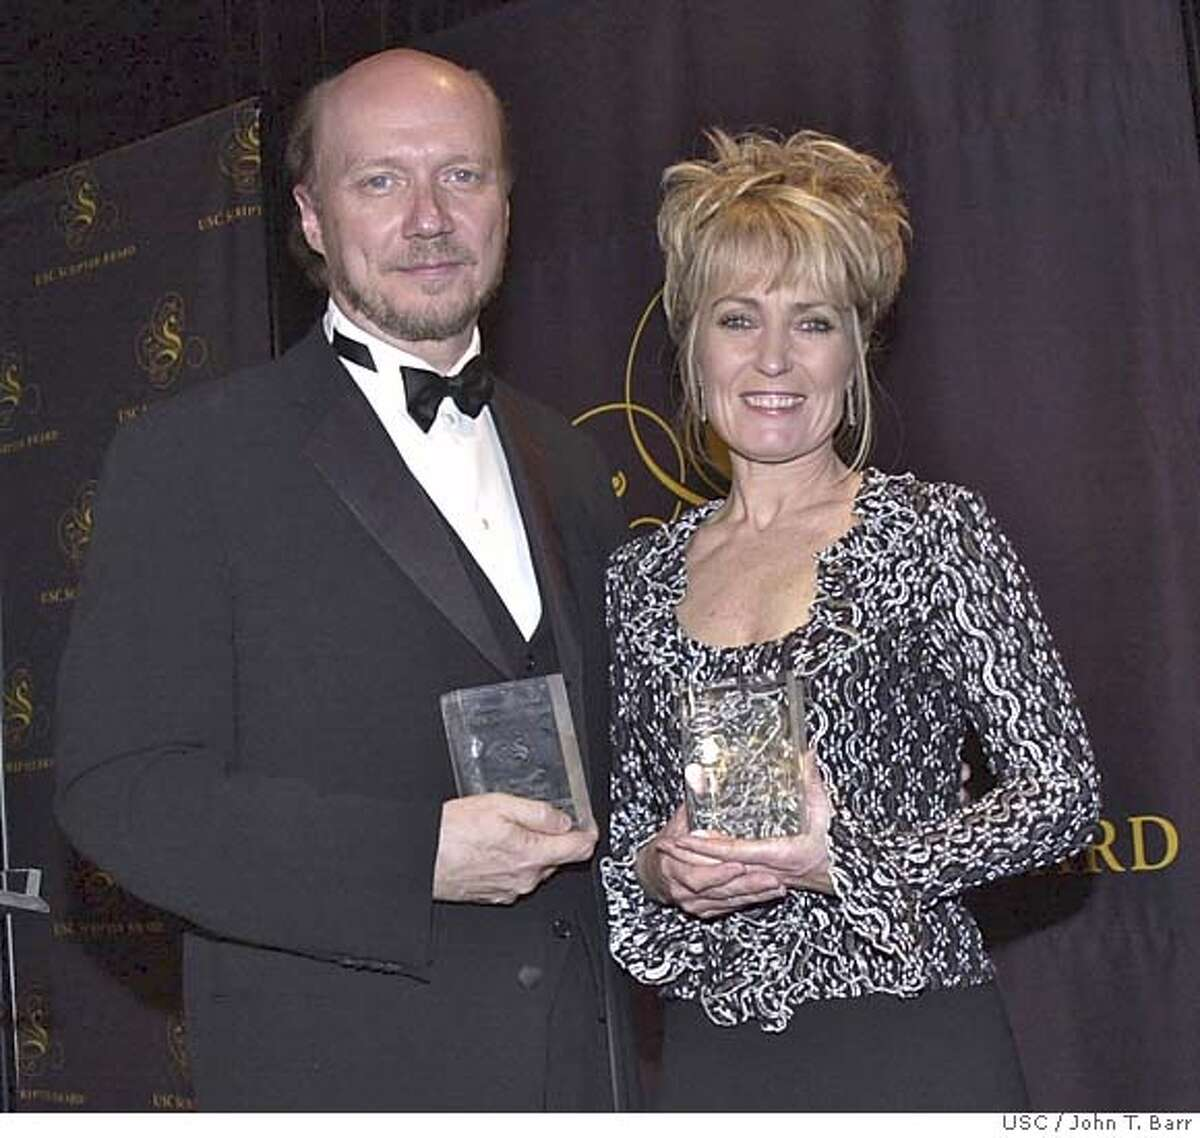 """The writers of """"Million Dollar Baby"""" receive the 17th annual , a prize that honors both author , F.X. Toole, and screenwriter Paul Haggis(L) for best adaptation of a book or short story to film late Sunday, February 20, 2005. At right is Erin Boyd, daughter of the late author Jerry Boyd(a.k.a. F.X.O'Toole) accepting the award for her father. The annual blacktie gala was held in the Edward L. Doheny Jr. Memorial Library on the USC campus"""